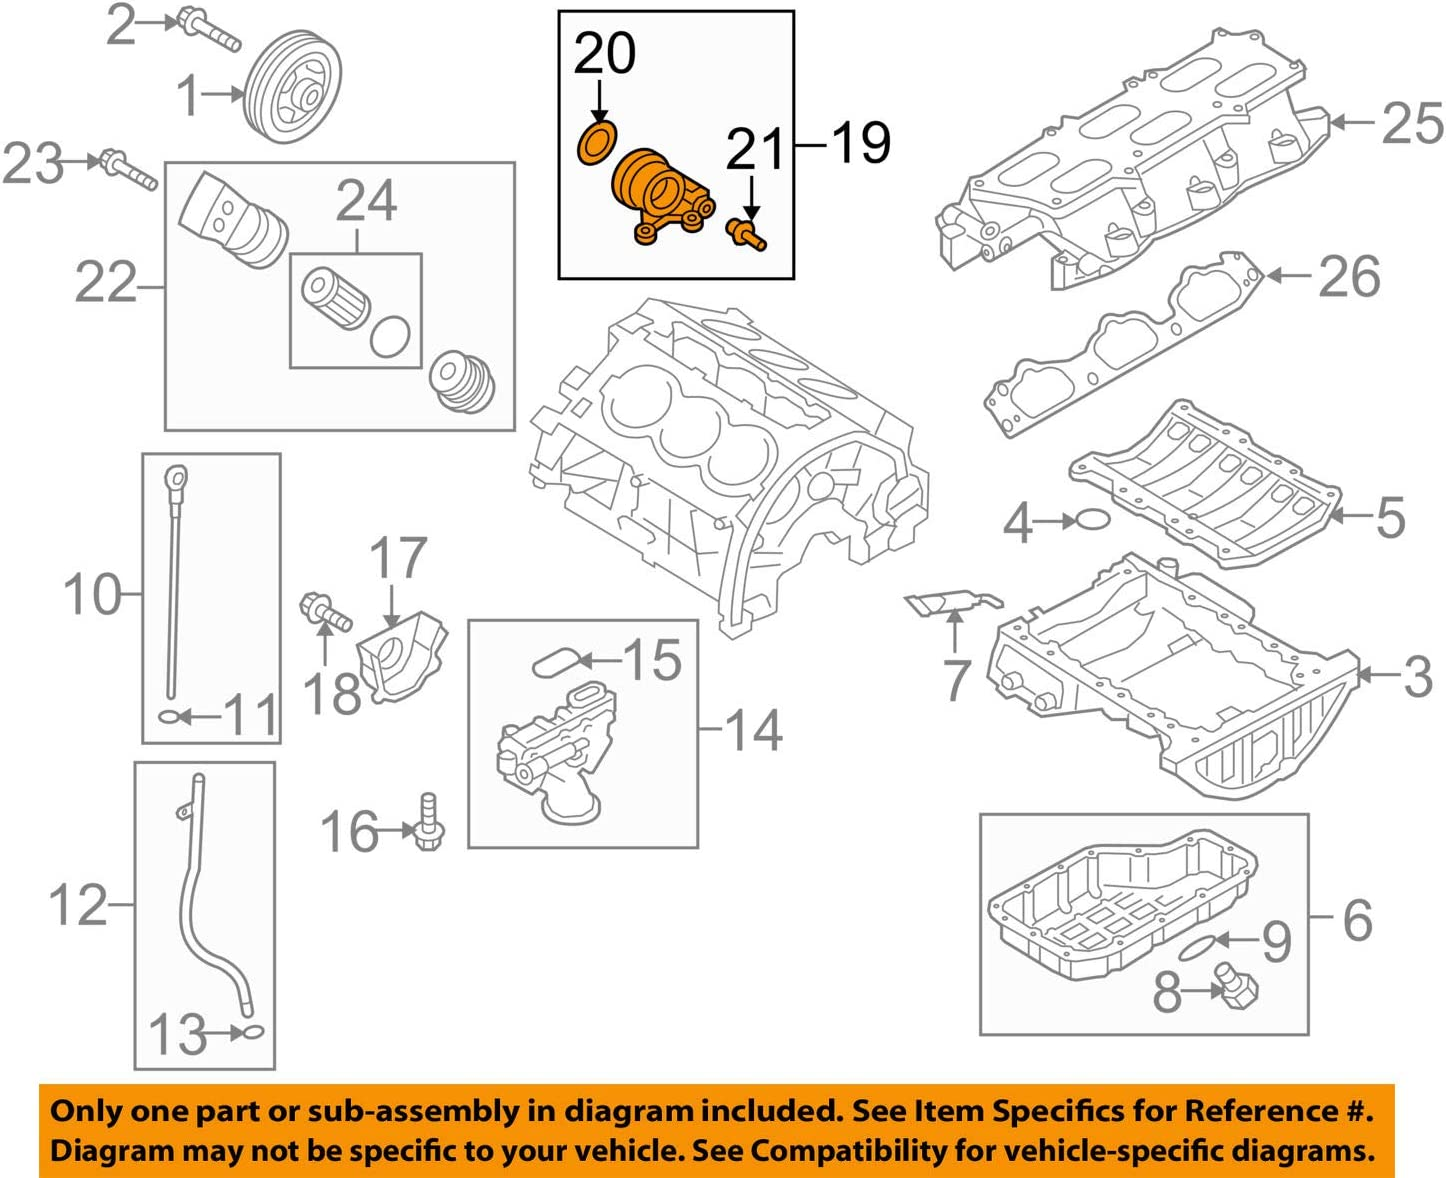 HYUNDAI OEM Genesis Coupe 3.8L-V6 Engine-Oil Filter Housing 211603C711, Oil  Filters & Accessories - Amazon CanadaAmazon.ca